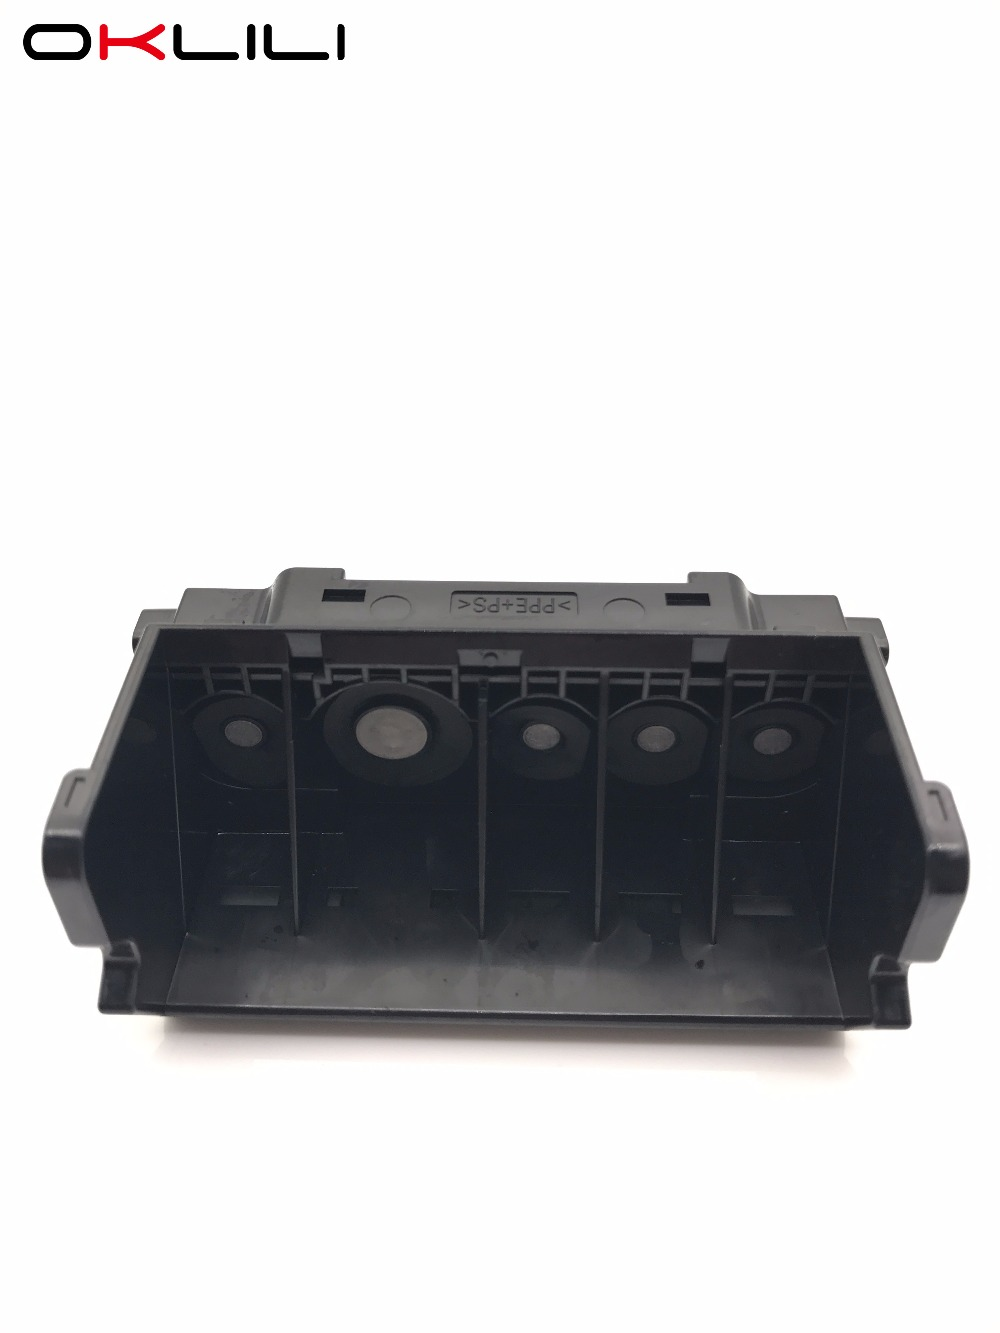 Print Printhead QY6-0073 ar gyfer Canon iP3600 iP3680 MP540 MP560 MP568 MP620 MX860 MX868 MX870 MX878 MG5140 MG5180 MG5150 MP550